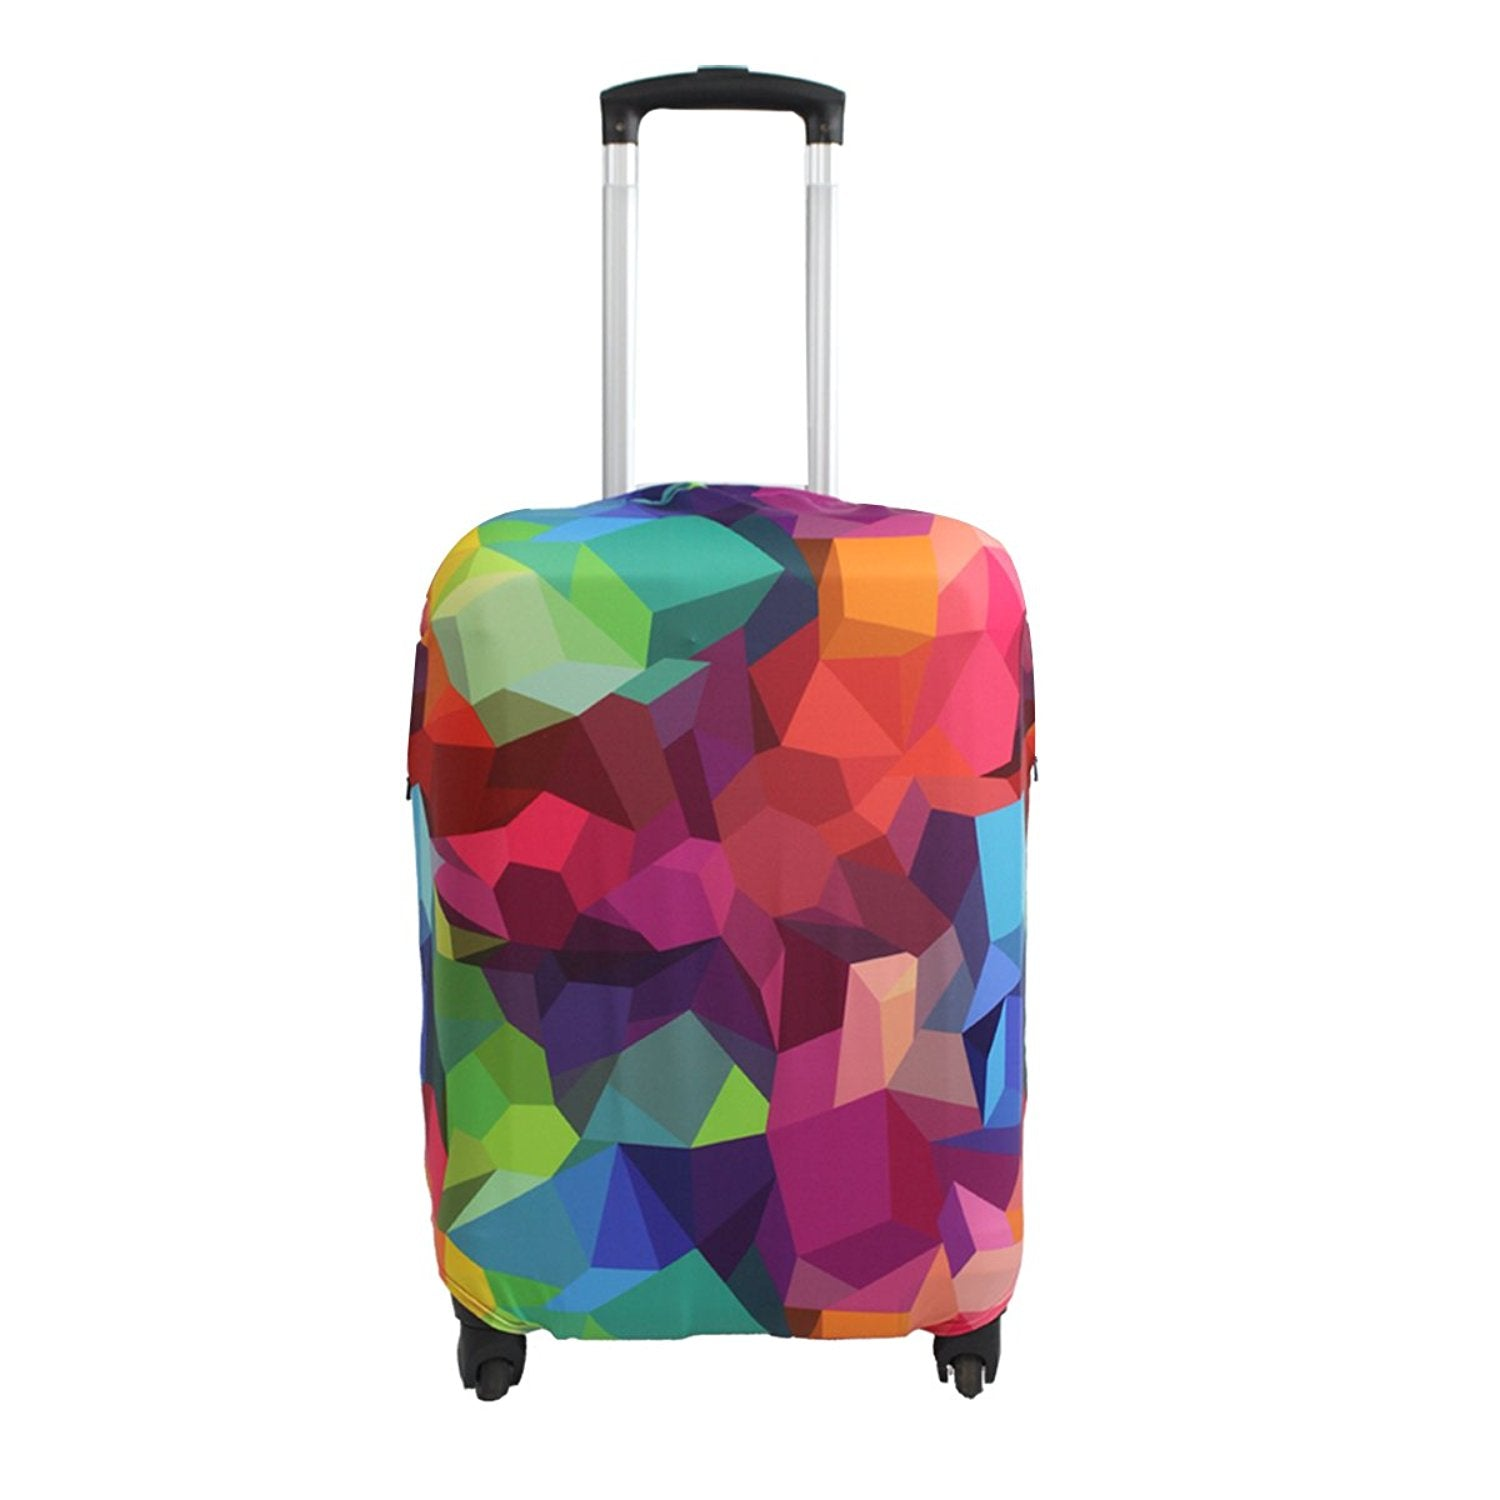 Fire, S Elastic Travel Luggage Cover Travel Suitcase Protective Cover for Trunk Case Apply to 19-32 Suitcase Cover 18-22 inch luggage